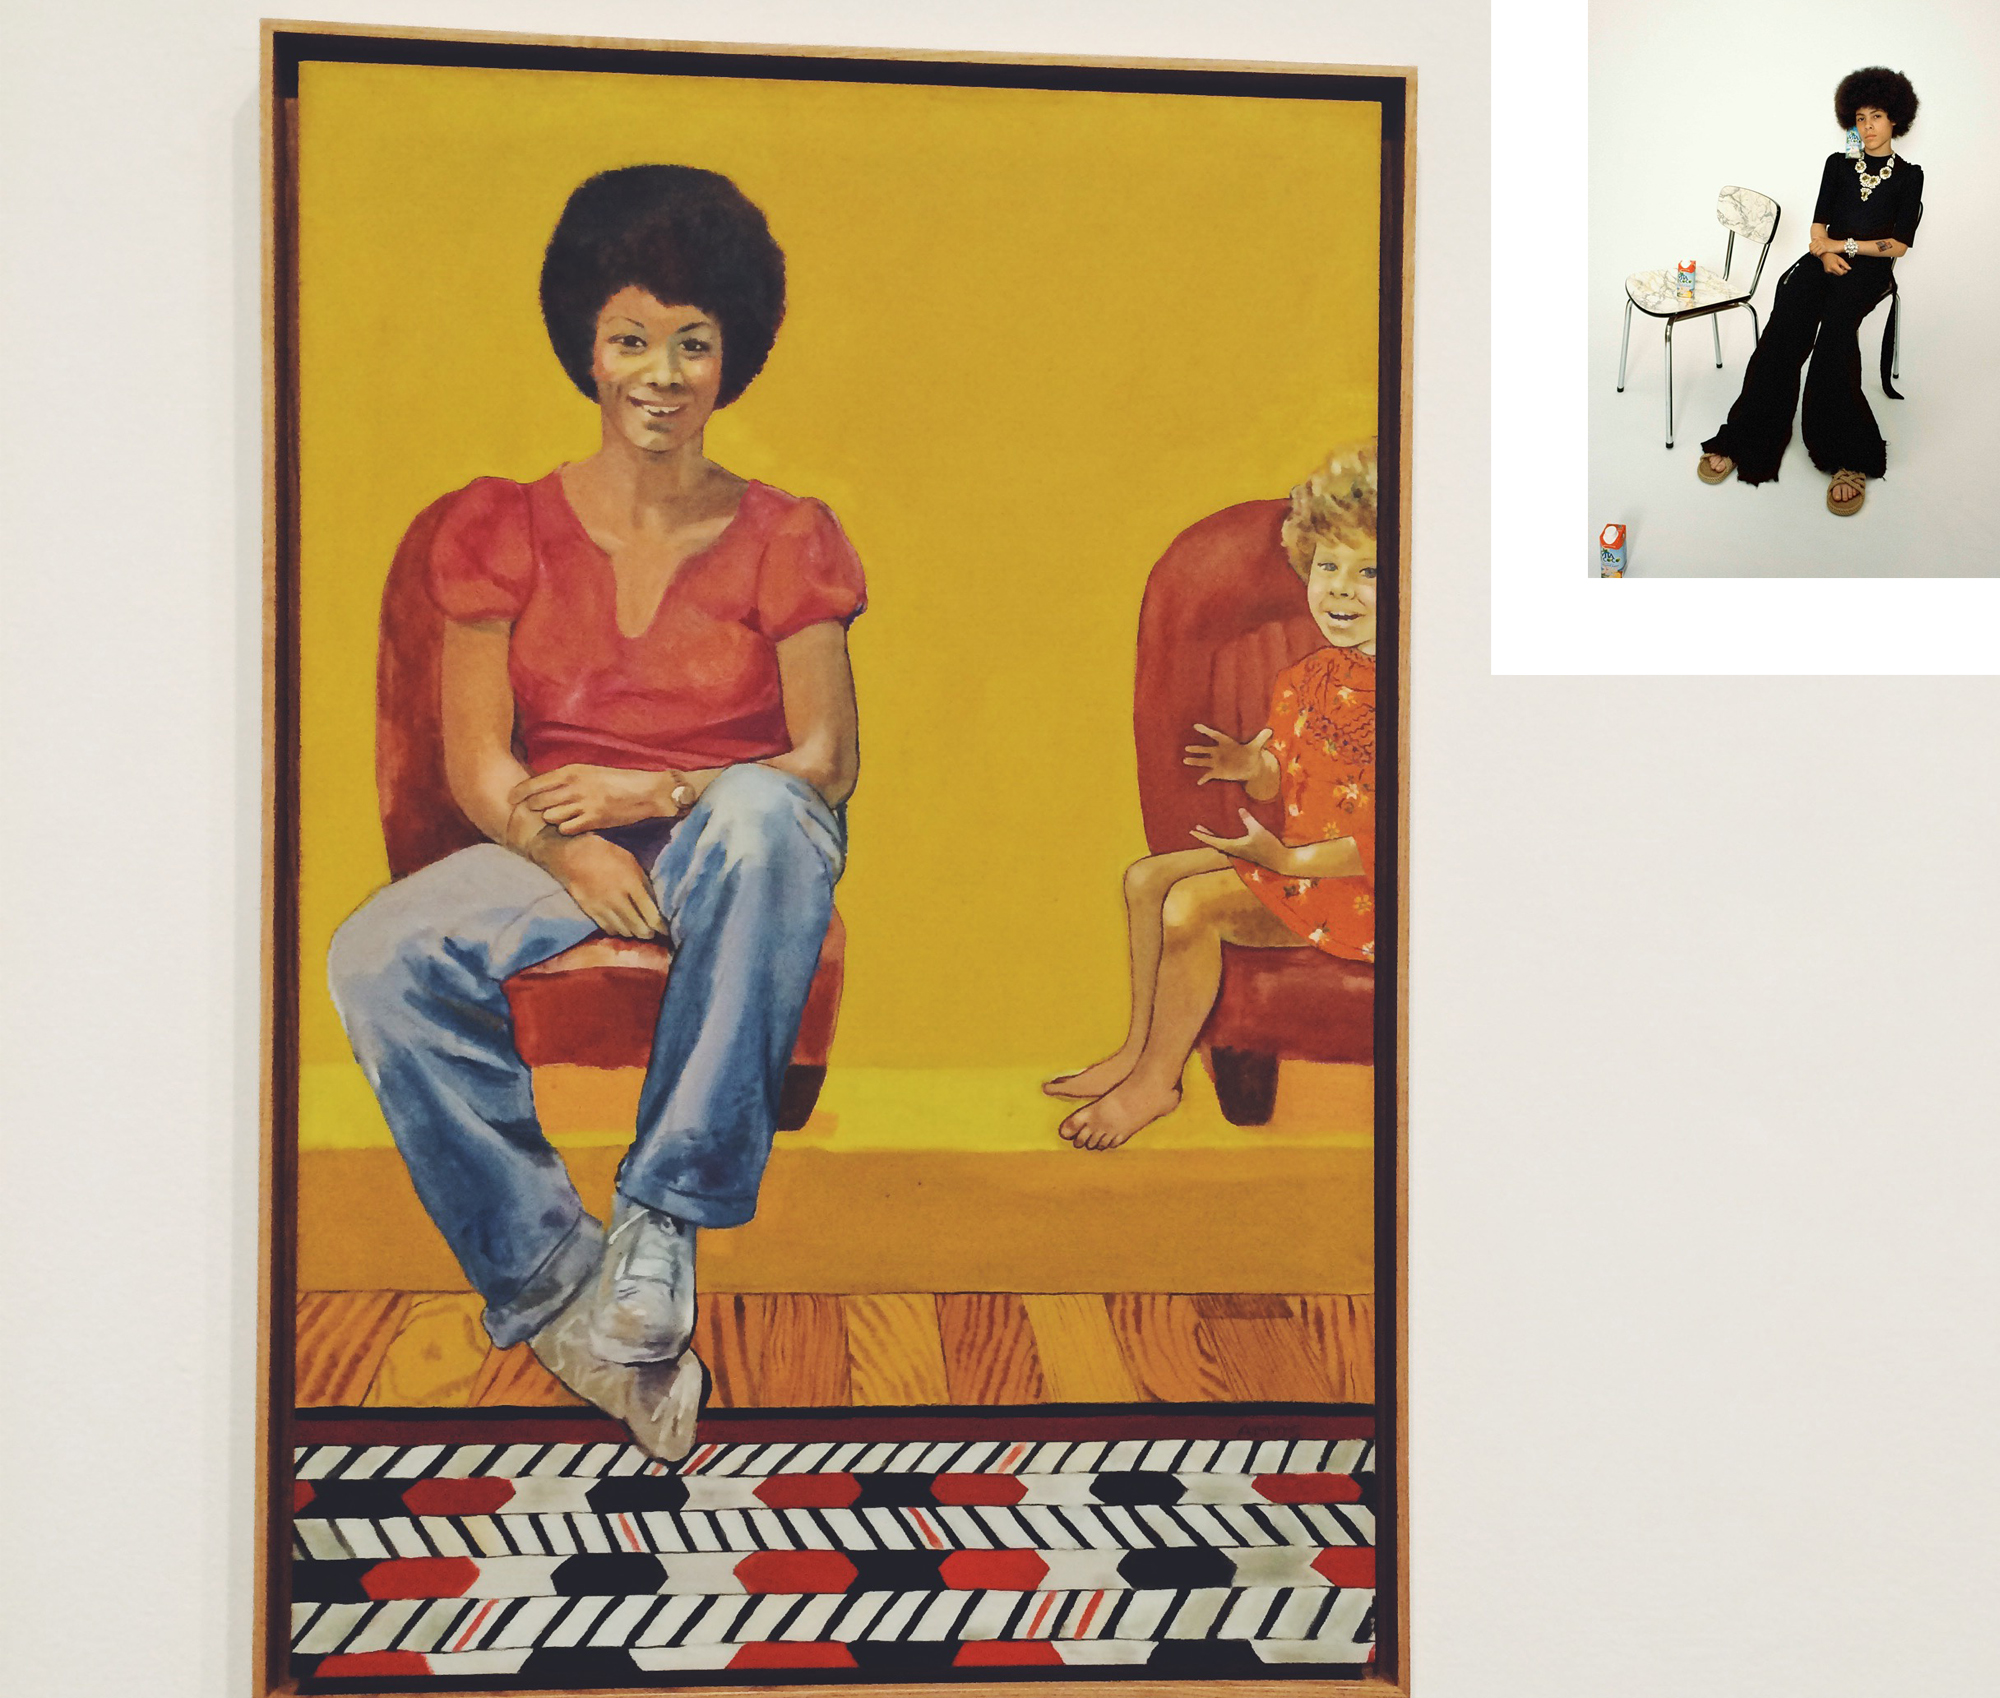 Grace Wales Bonner, Emma Amos, Soul of a Nation, black power, London, art, exhibition, lifestyle